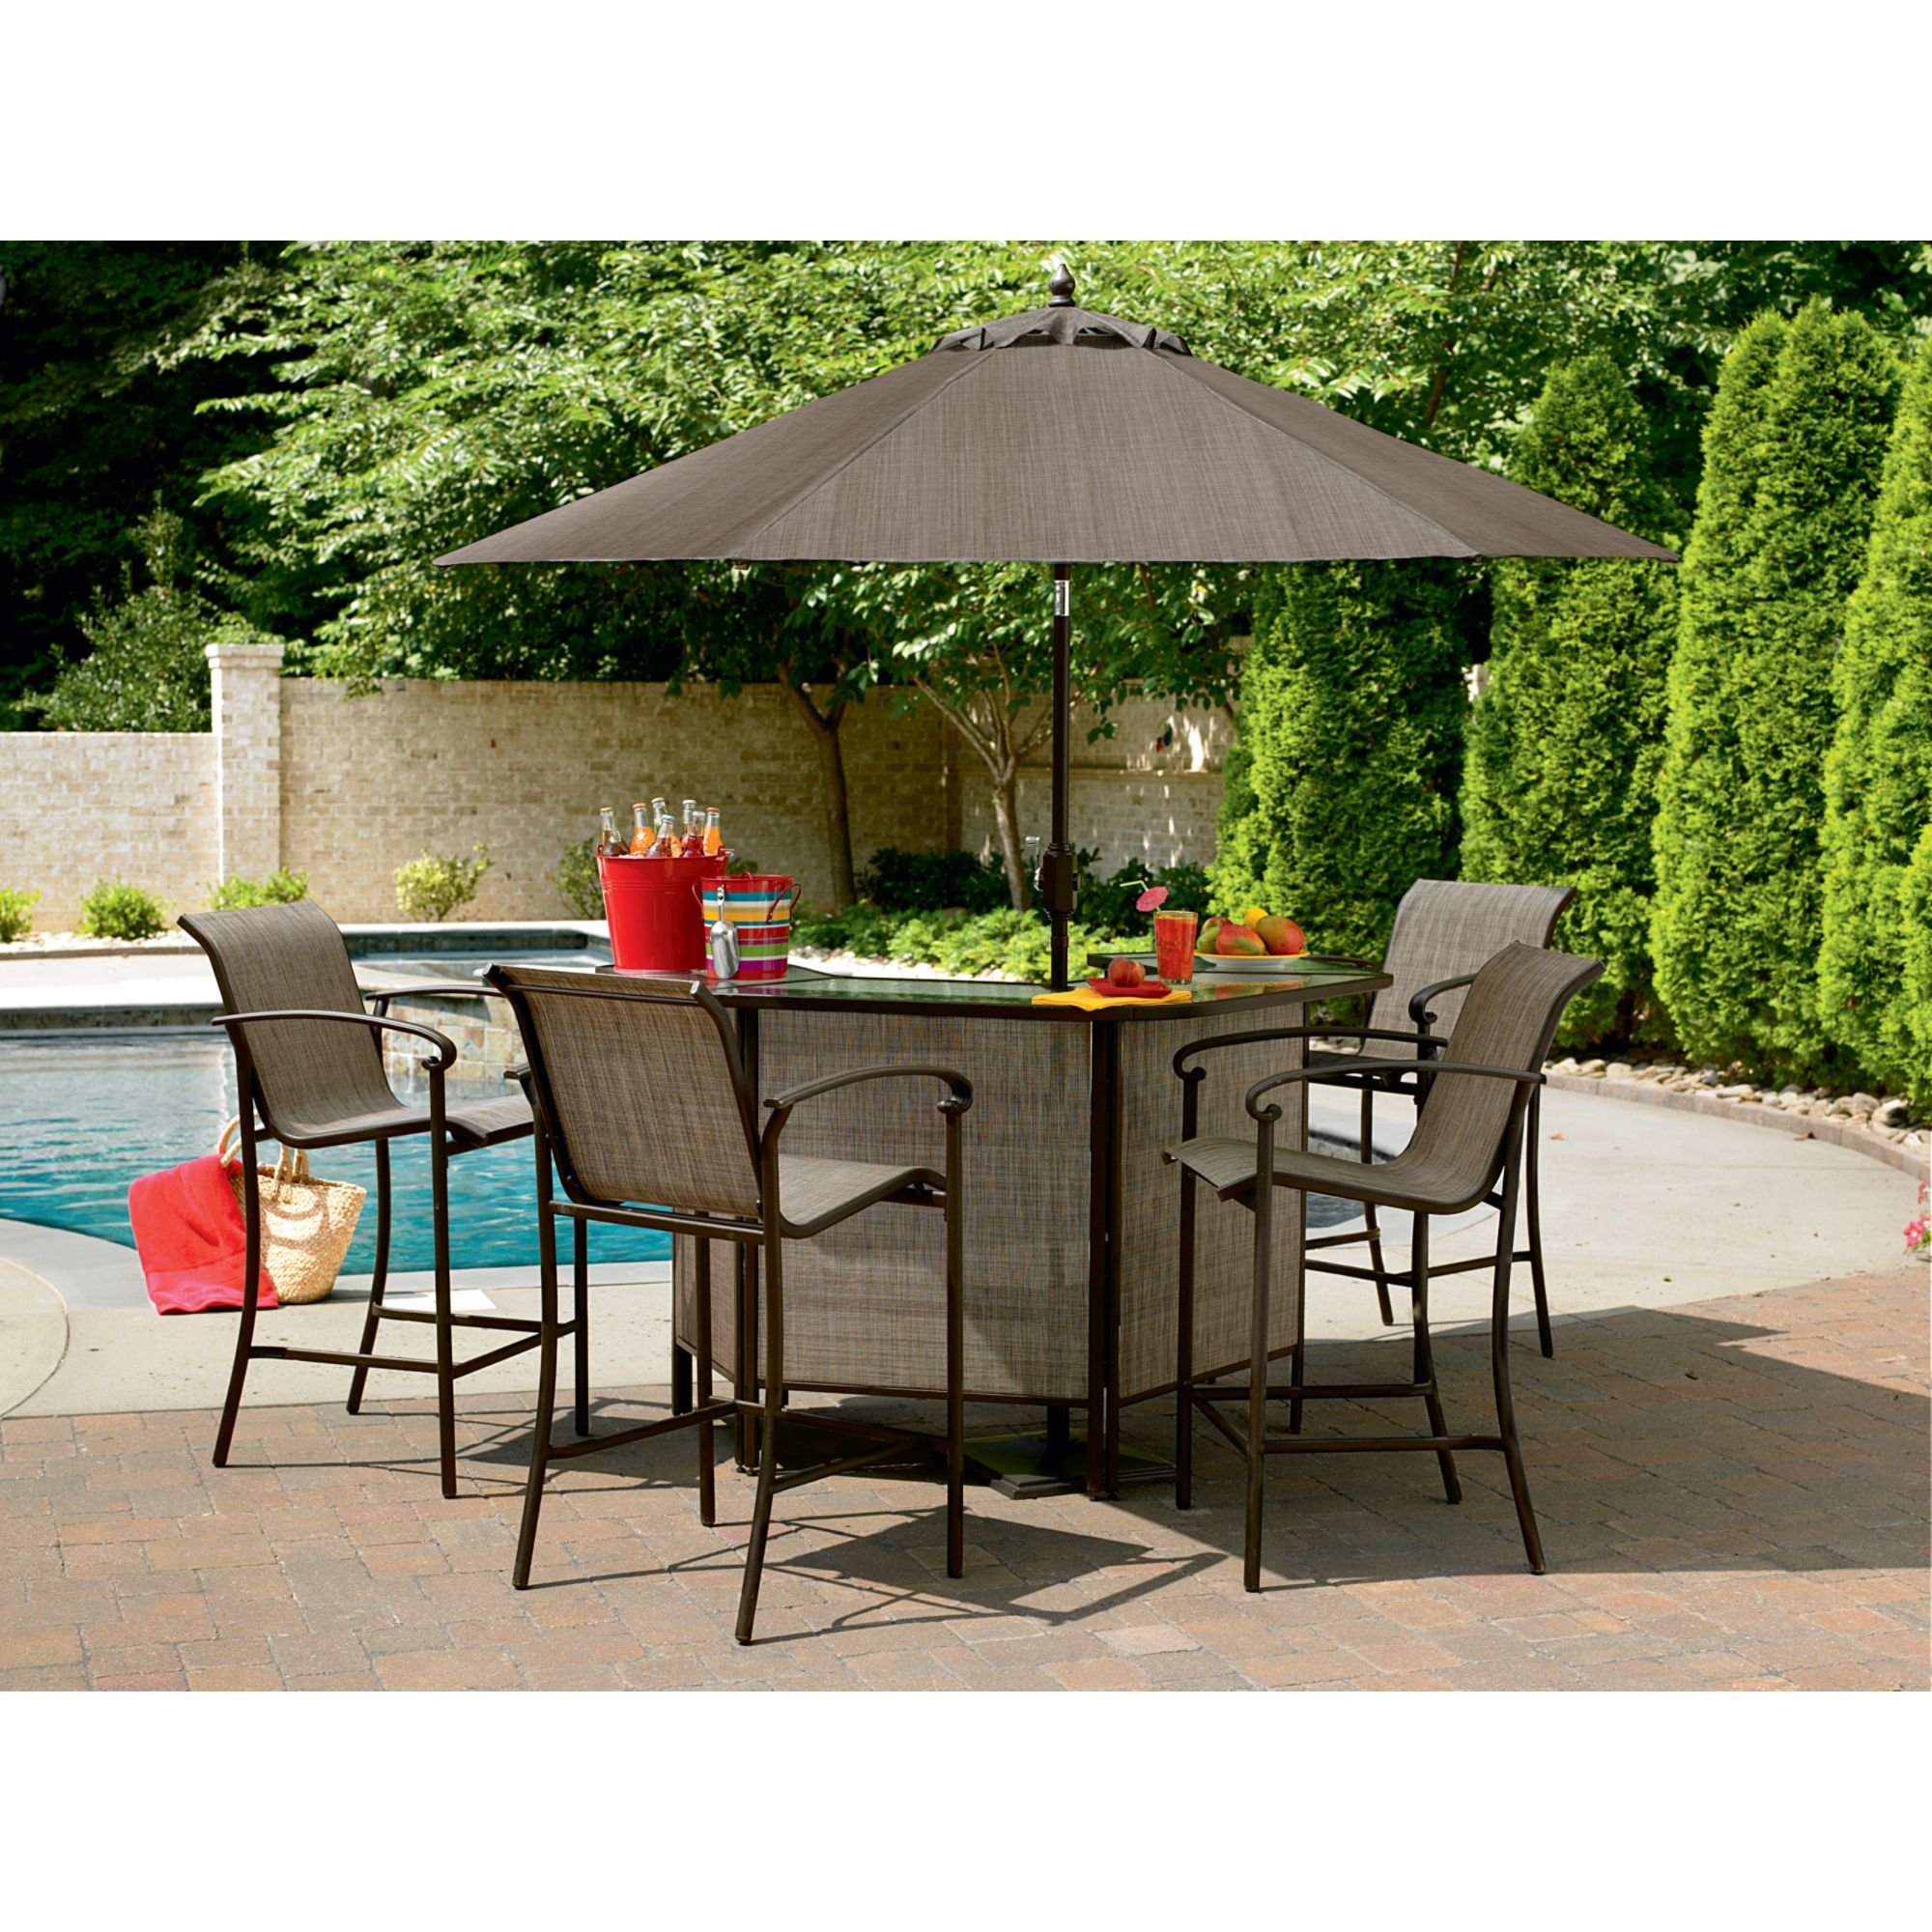 garden oasis patio chairs little tikes table and pink 5 piece bar set: have fun hosting with sears